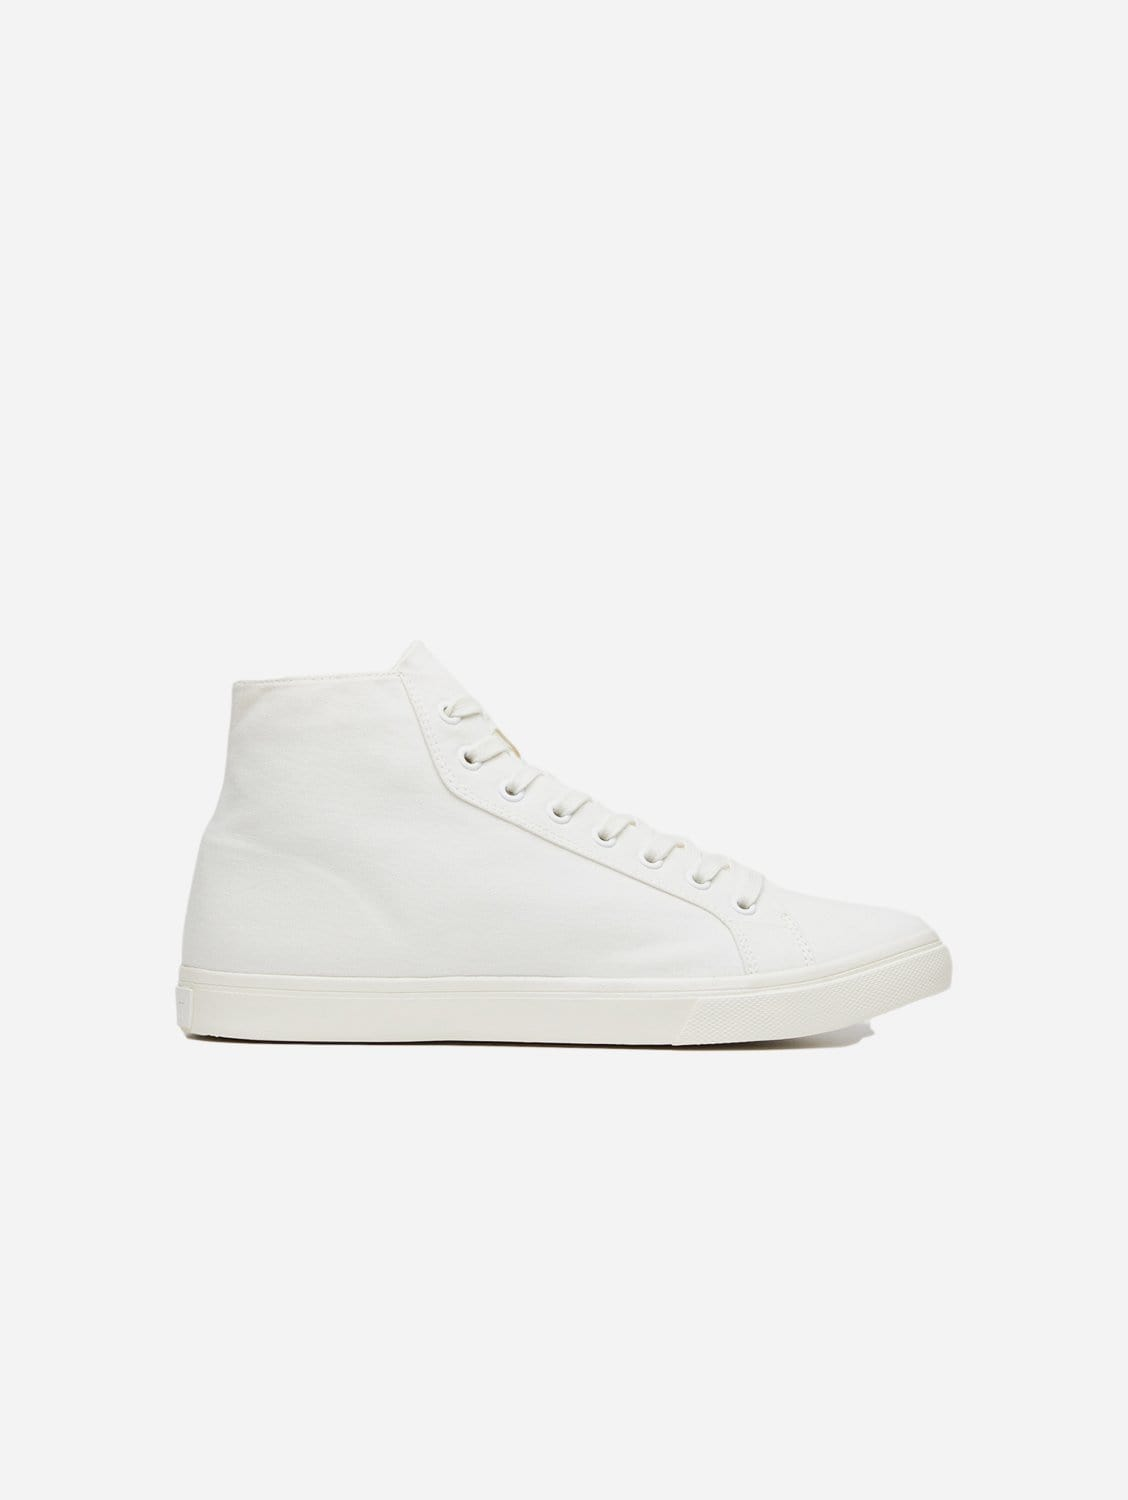 Climate Positive Recycled Canvas High-Top Trainer | White/Stripes